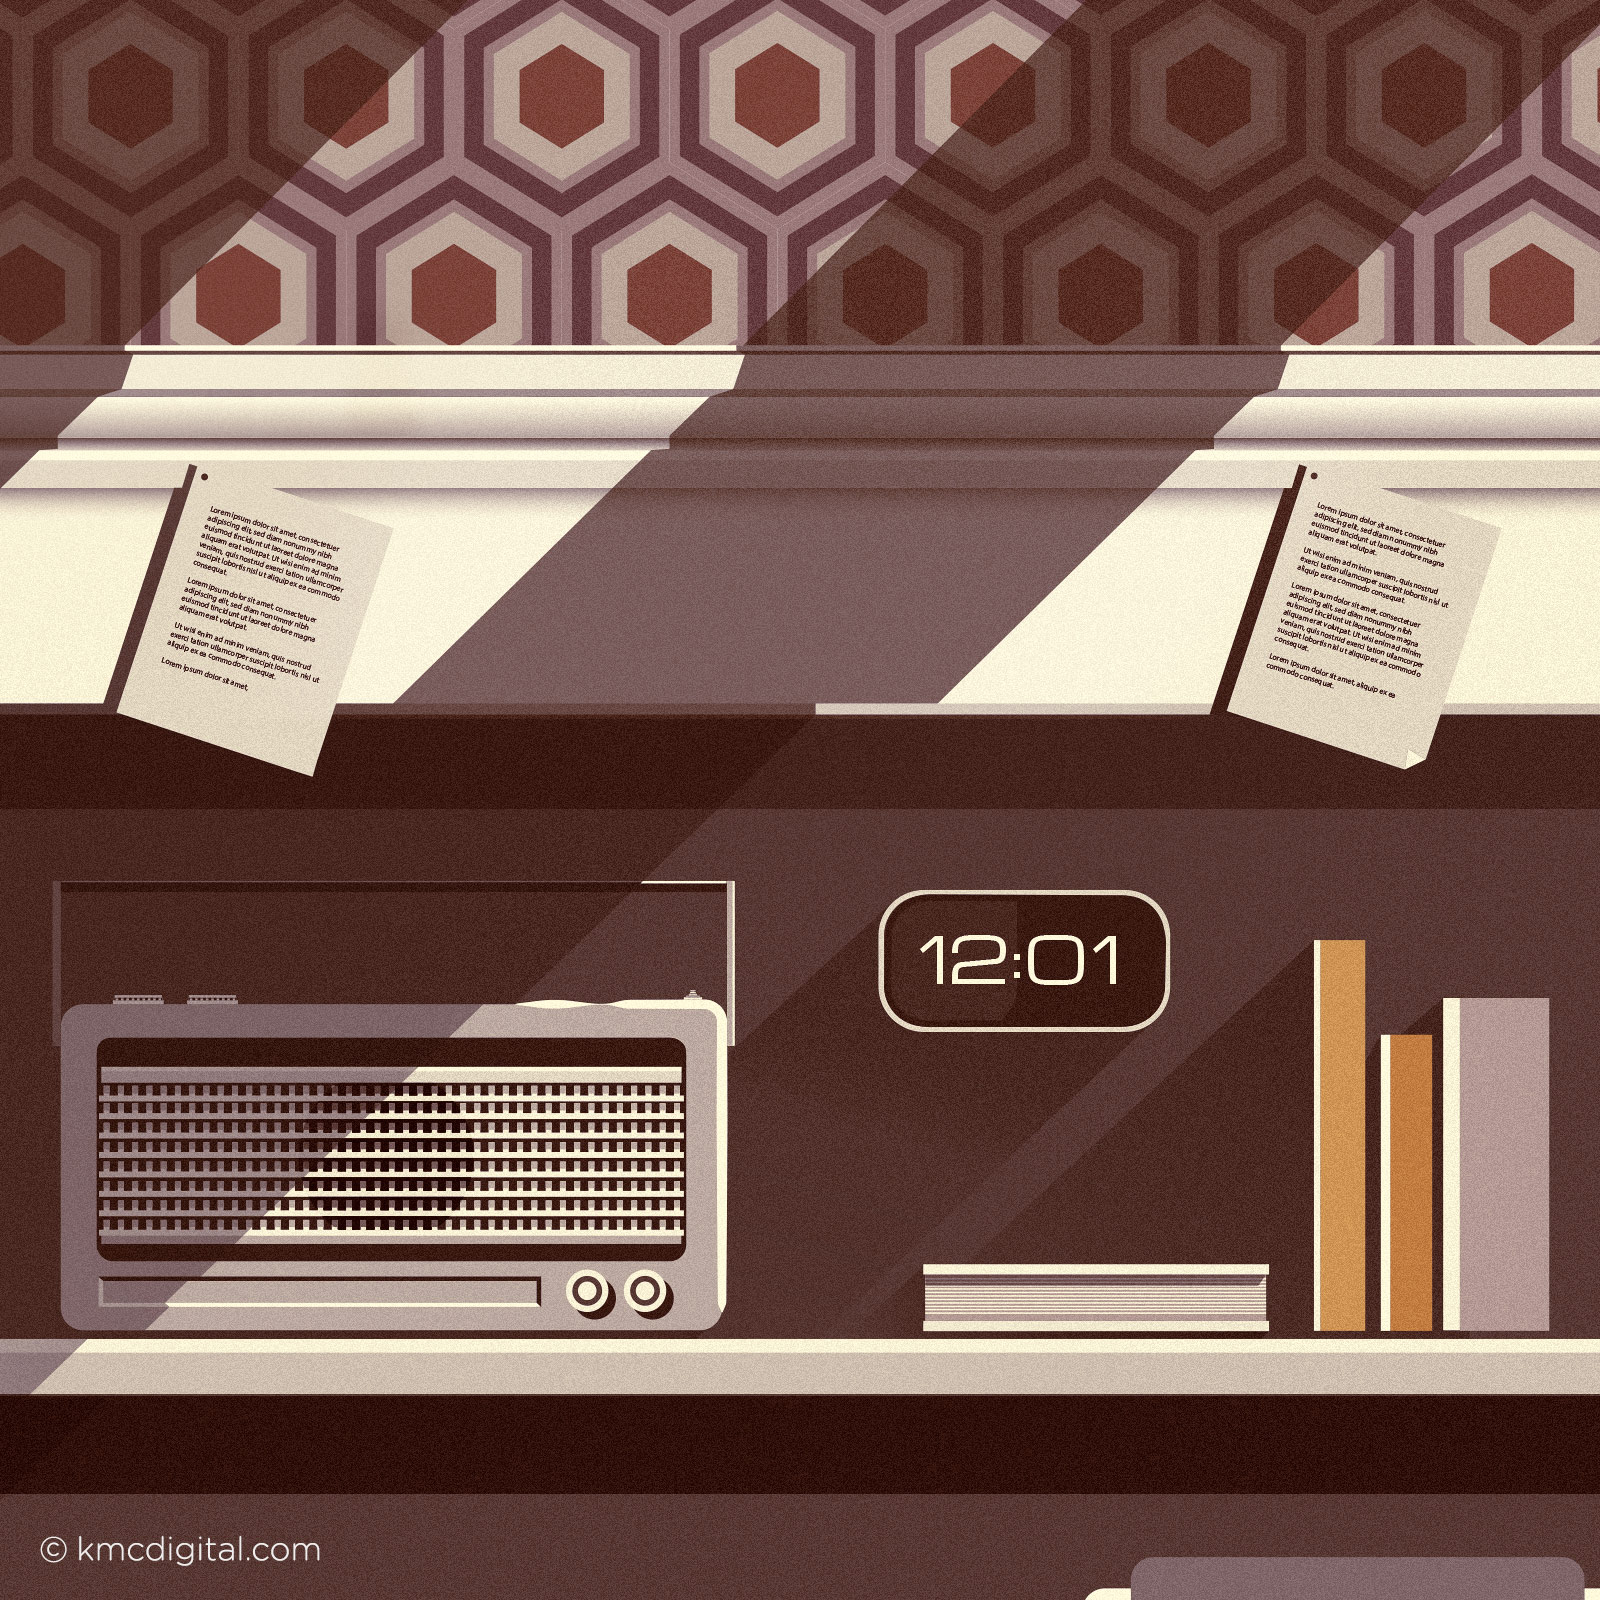 Words and Music Illustration vignette